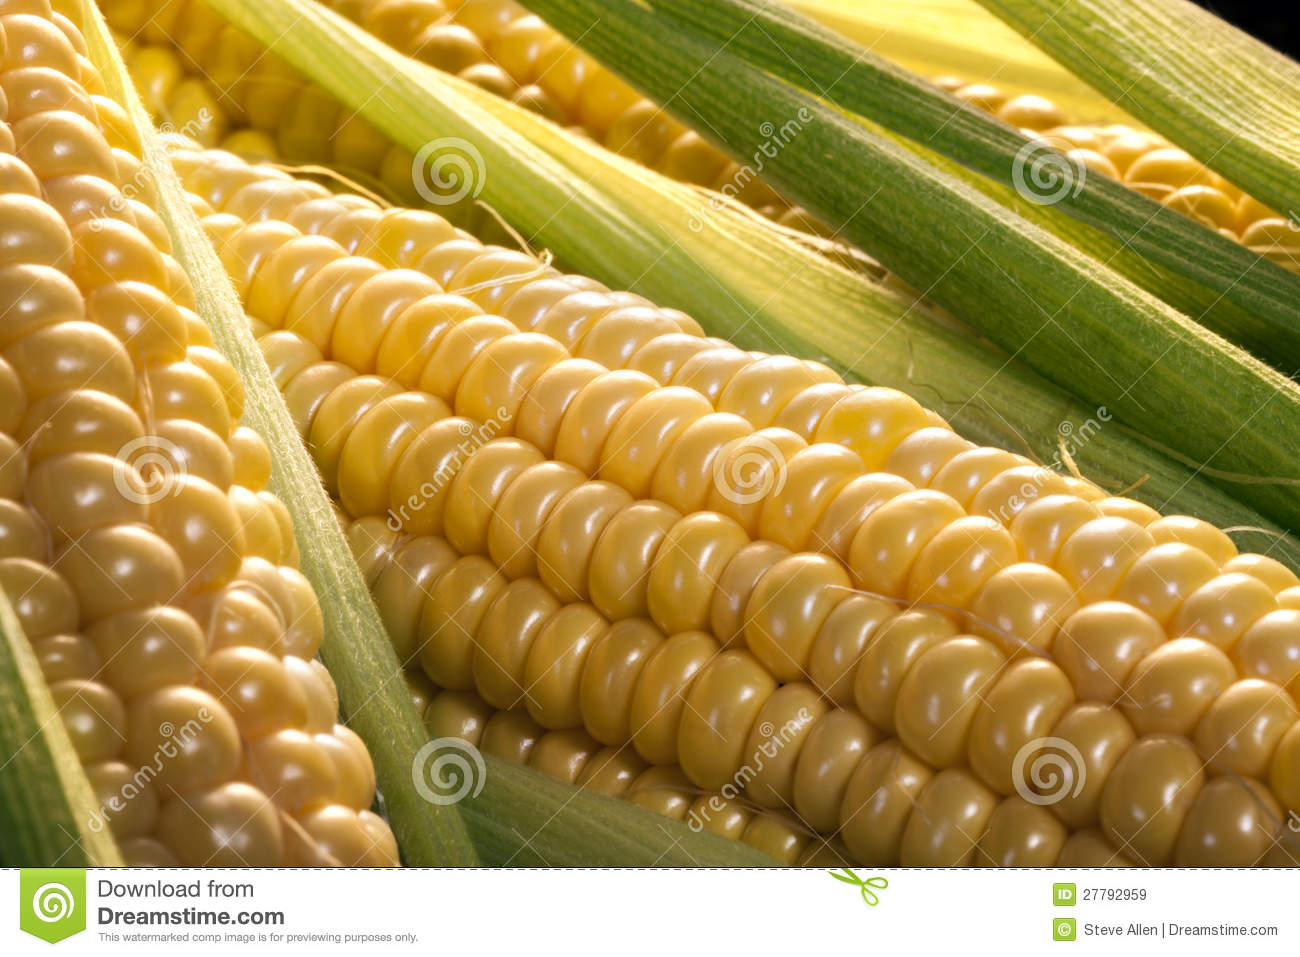 Download Corn on the cob stock image. Image of yellow, corn, supermarket - 27792959